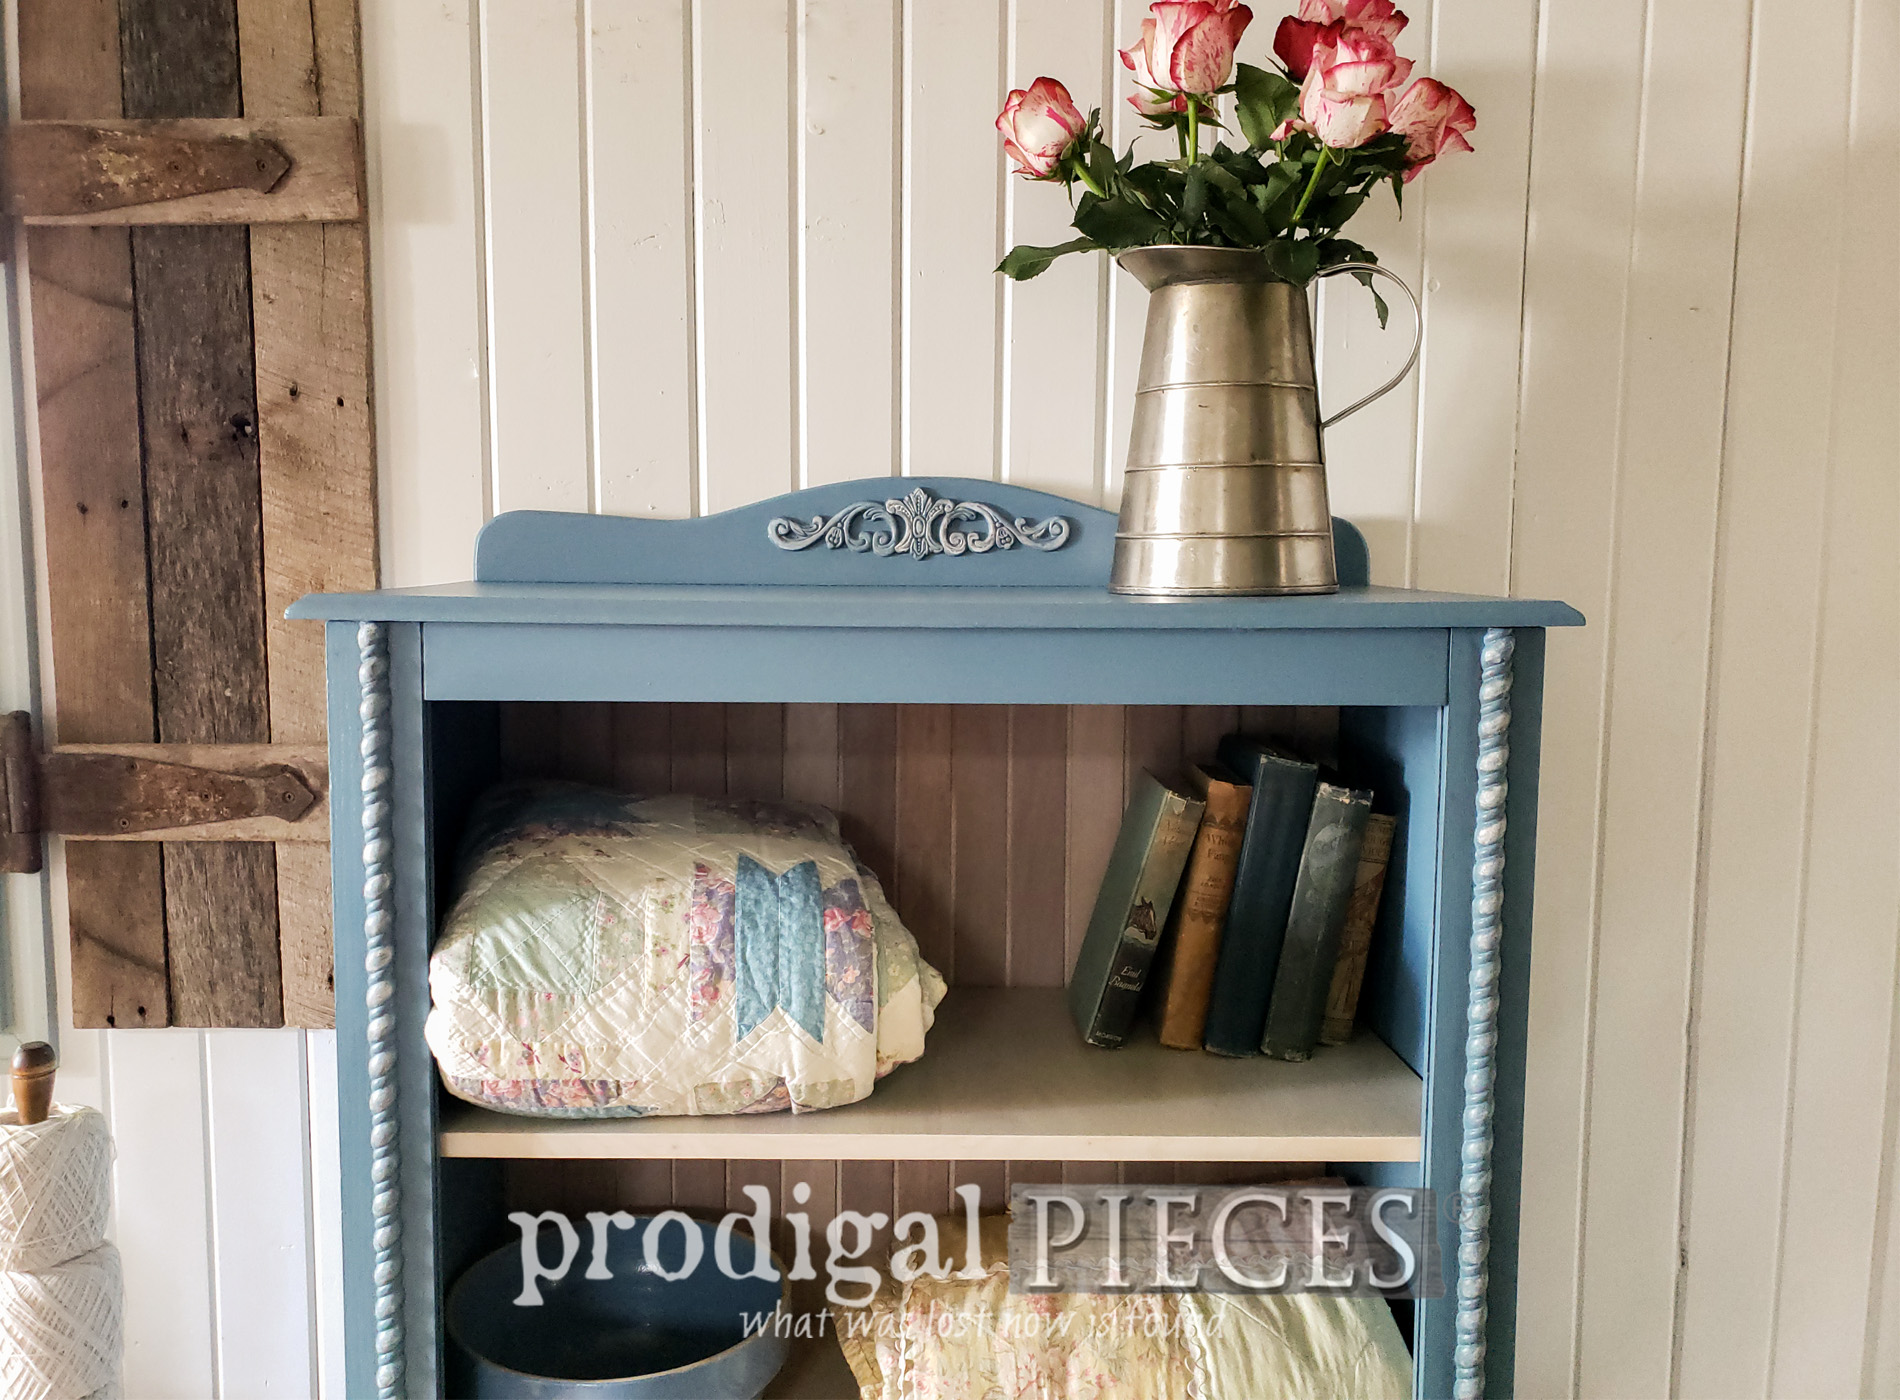 Featured Repurposed Curio Cabinet into Cottage Cupboard by Larissa of Prodigal Pieces | prodigalpieces.com #prodigalpieces #diy #cottage #farmhouse #cupboard #furniture #home #homedecor